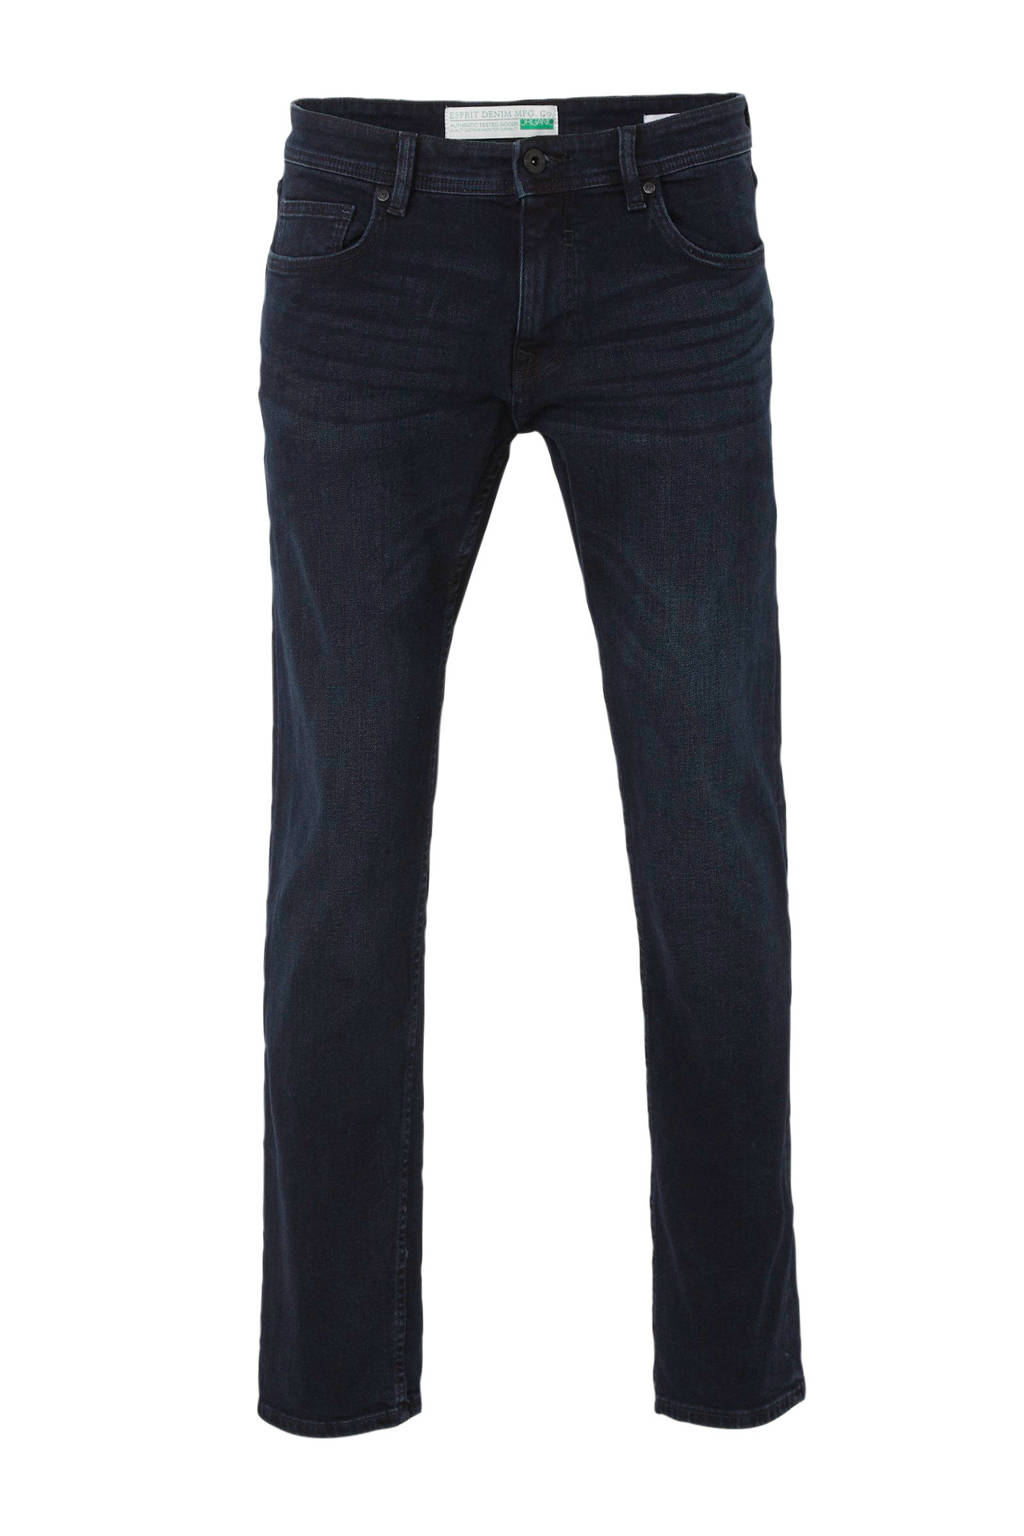 ESPRIT Men Casual straight fit jeans donkerblauw, Donkerblauw